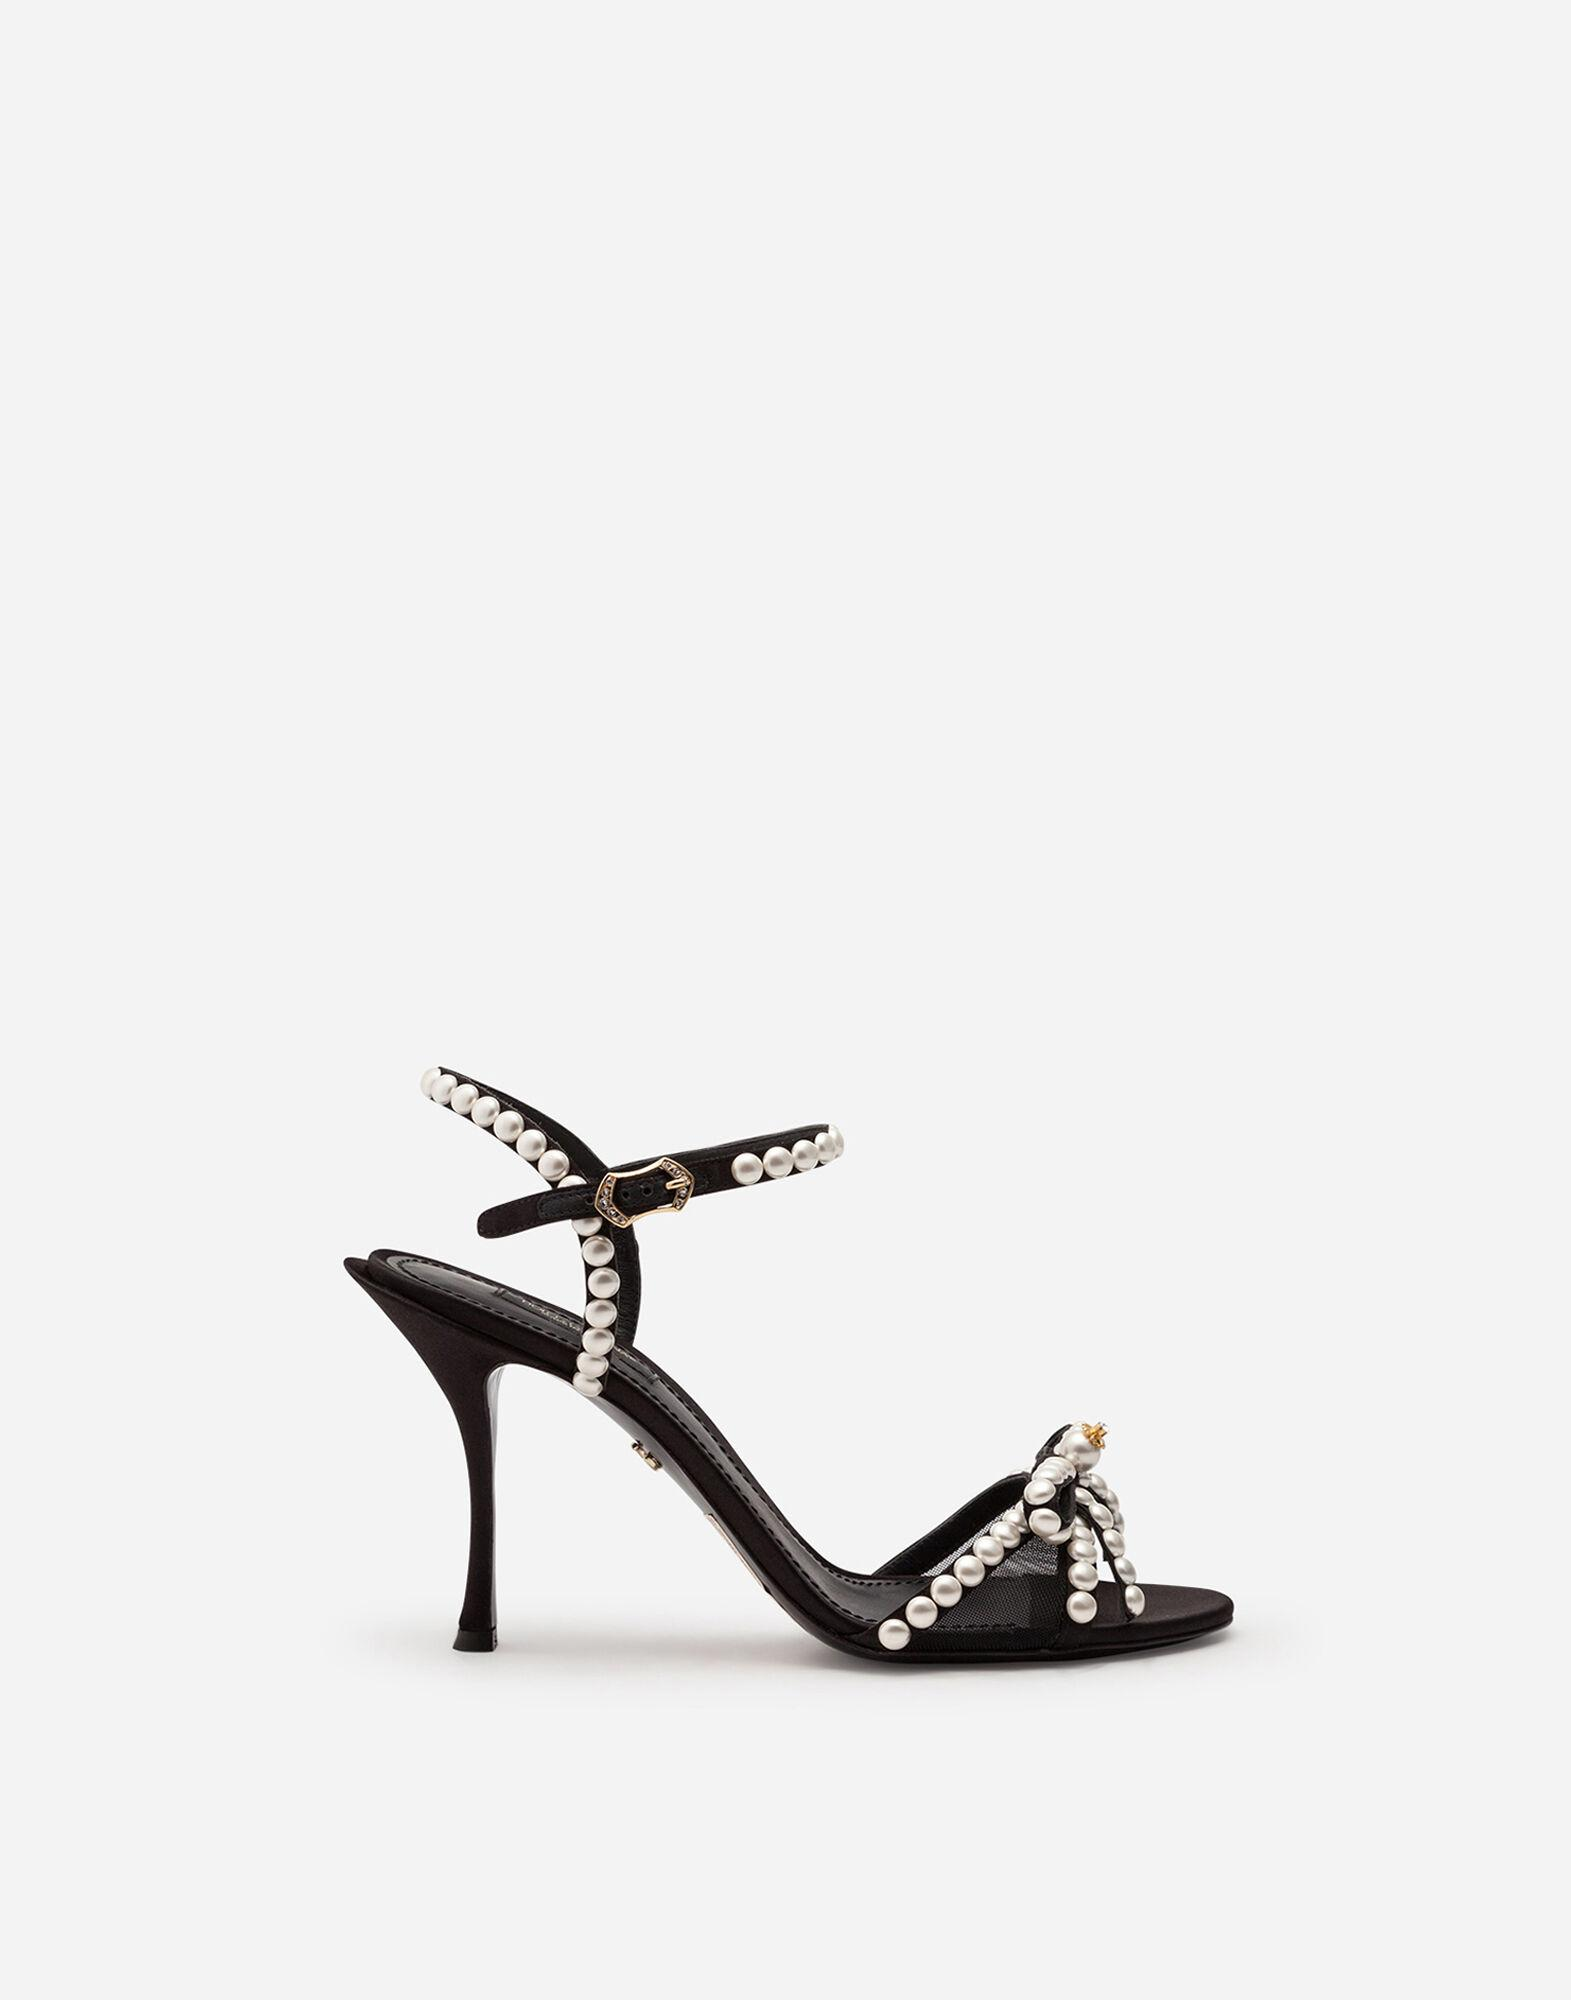 Satin sandals with pearl application